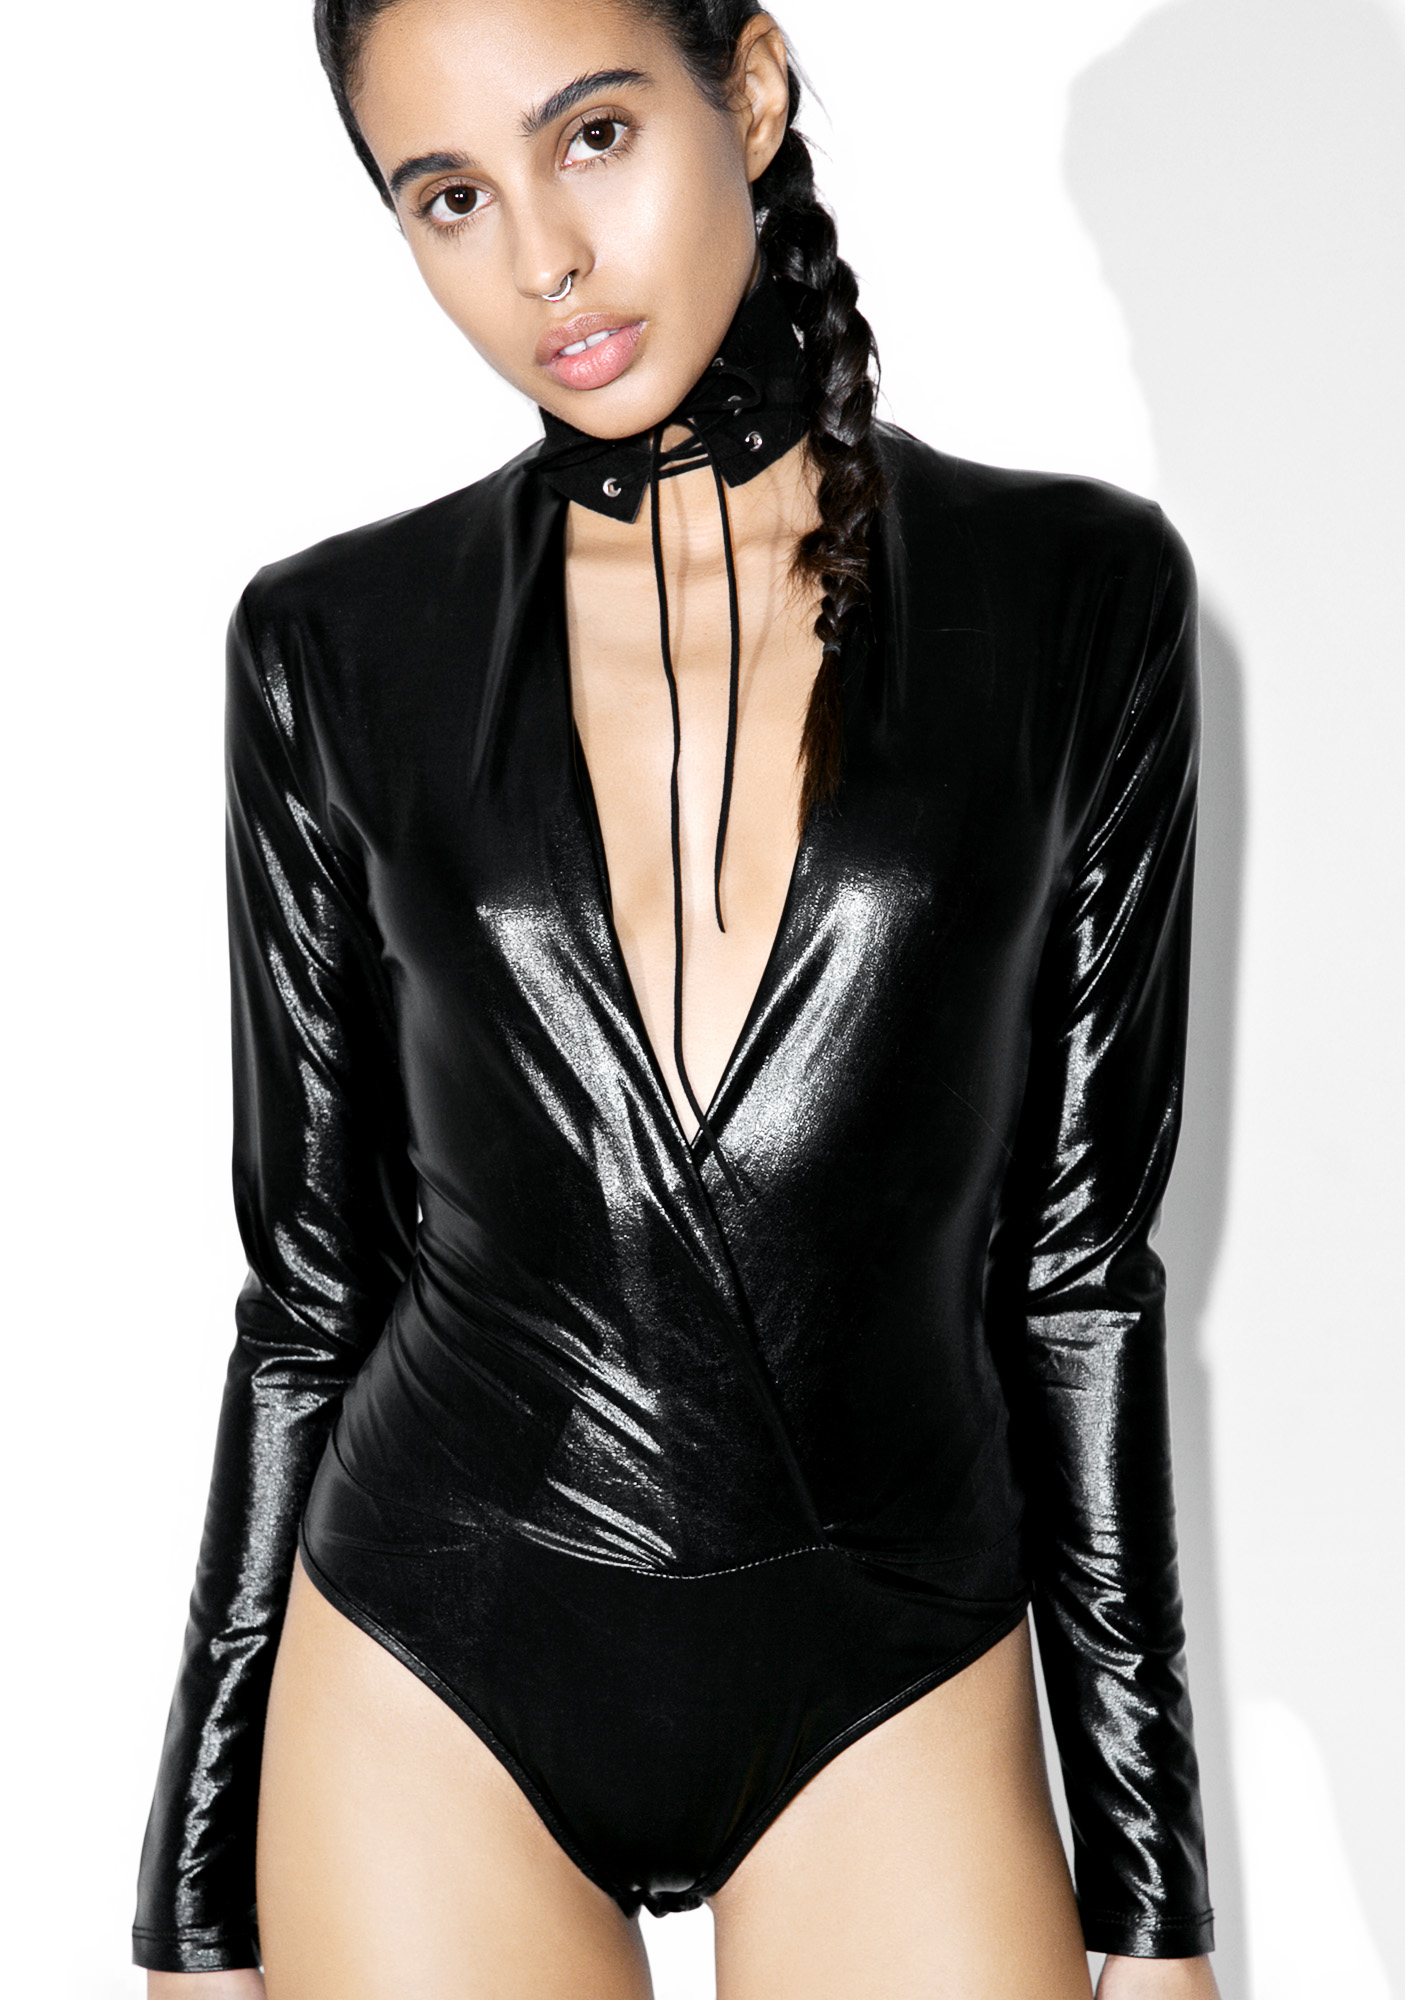 Black Metallic Bodysuit